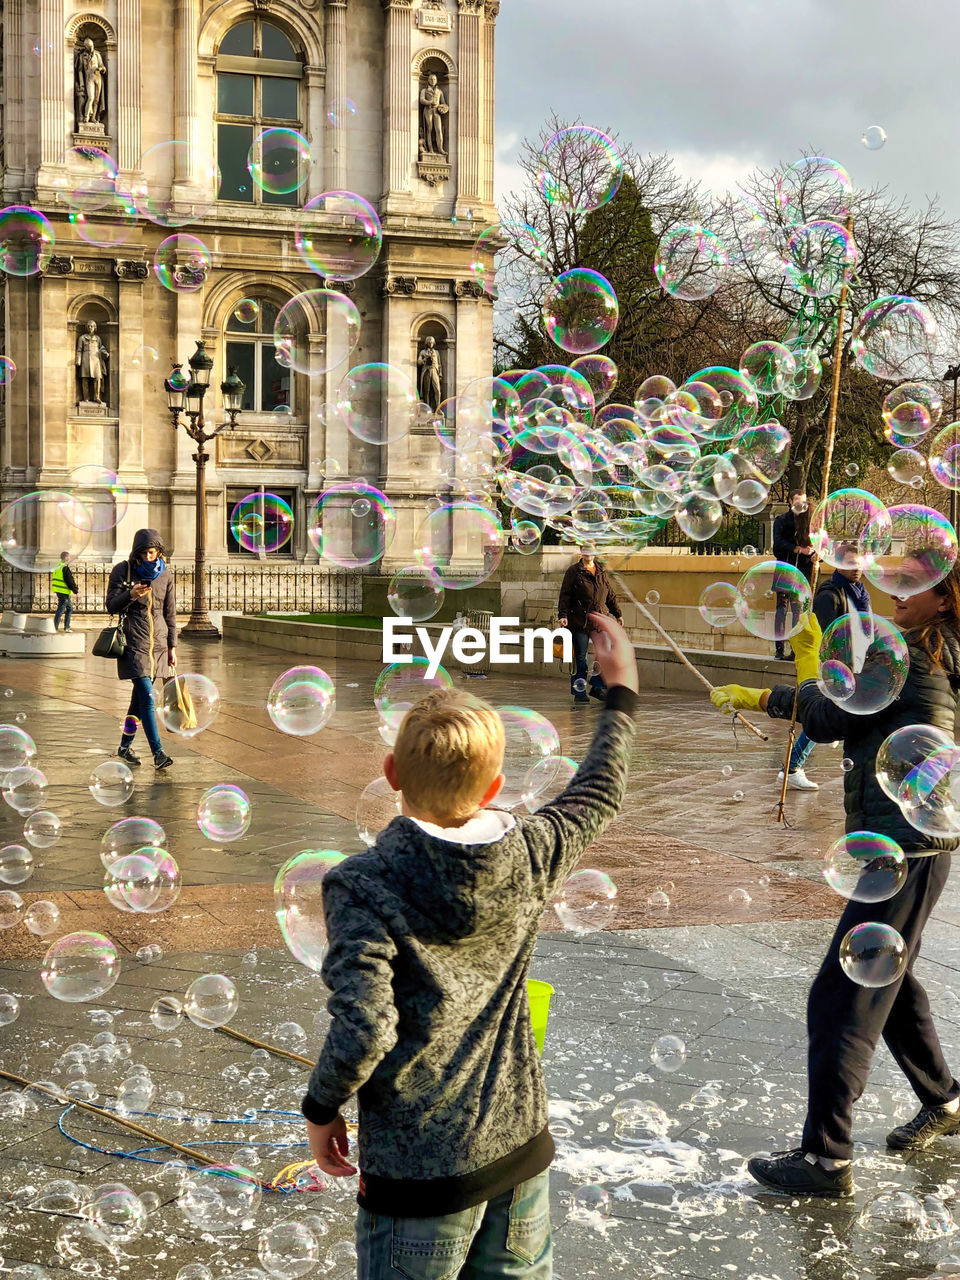 bubble, men, child, group of people, real people, boys, city, childhood, women, architecture, males, day, street, built structure, people, building exterior, females, standing, leisure activity, lifestyles, outdoors